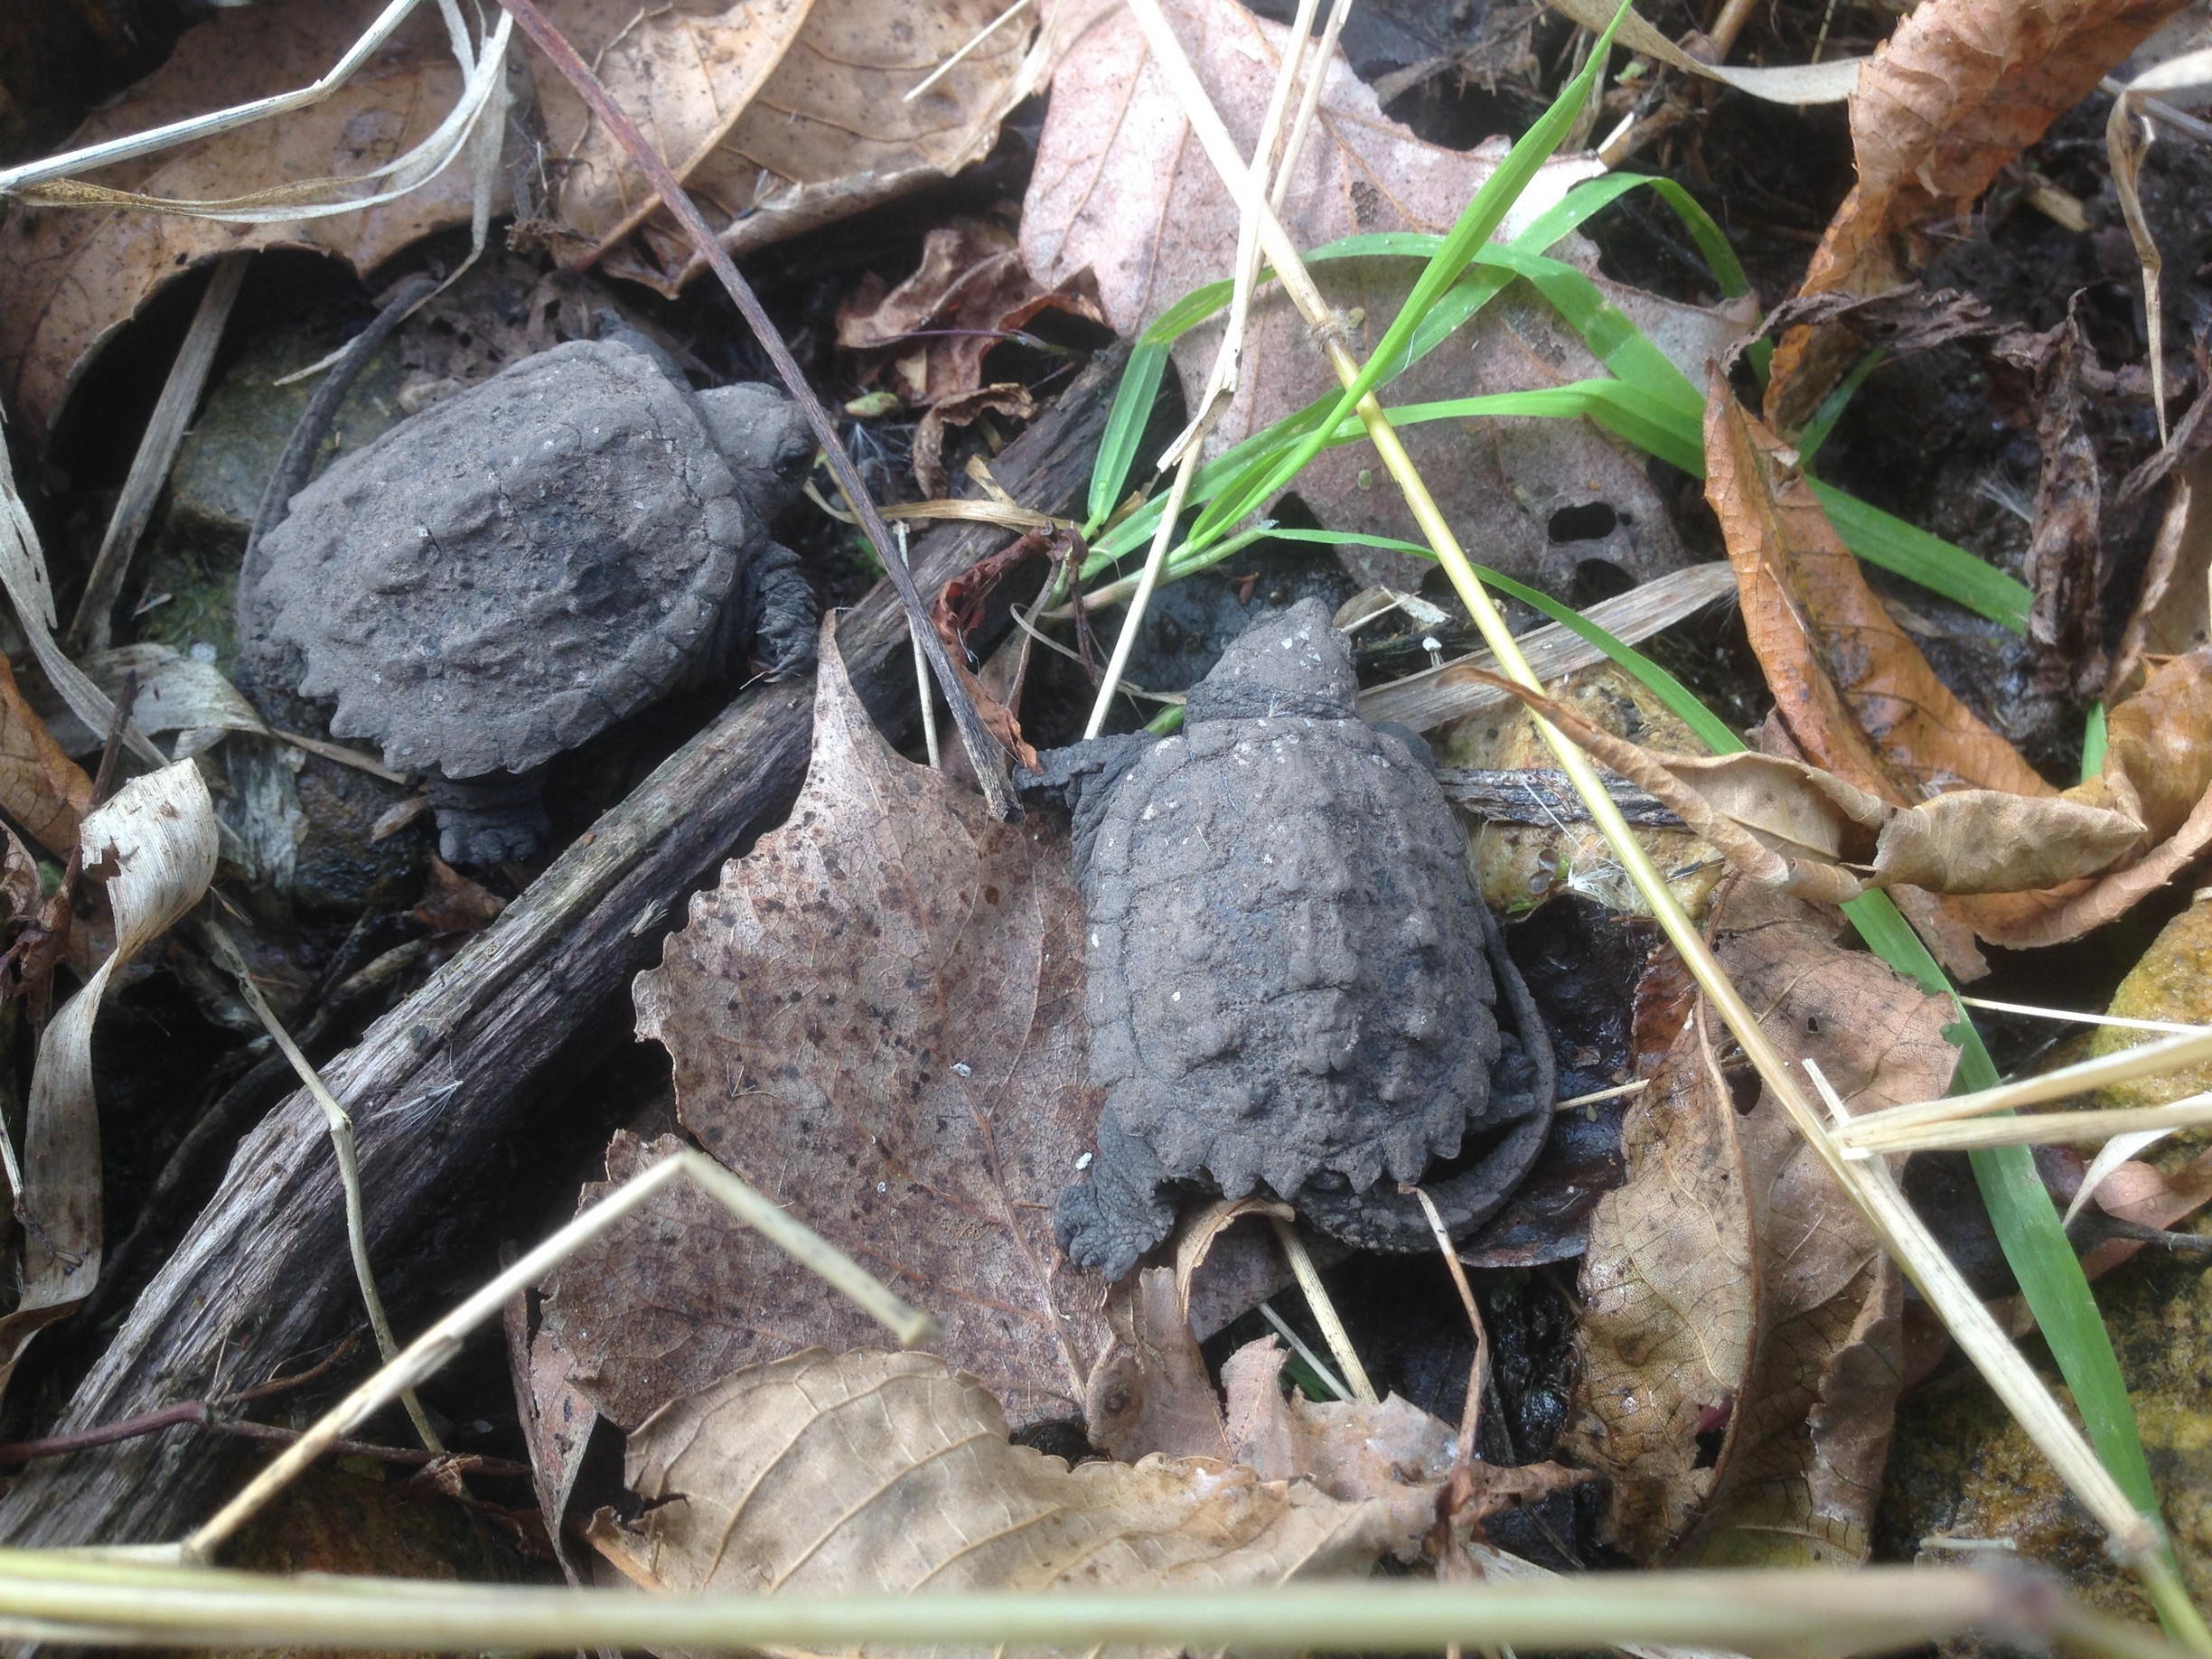 These little turtles were found wandering the parking lot of Wilson Hall. They were safely relocated to the swampy area by the pedestrian bridge, where the appear much happier. Photo: Patrick Sheahan, AD